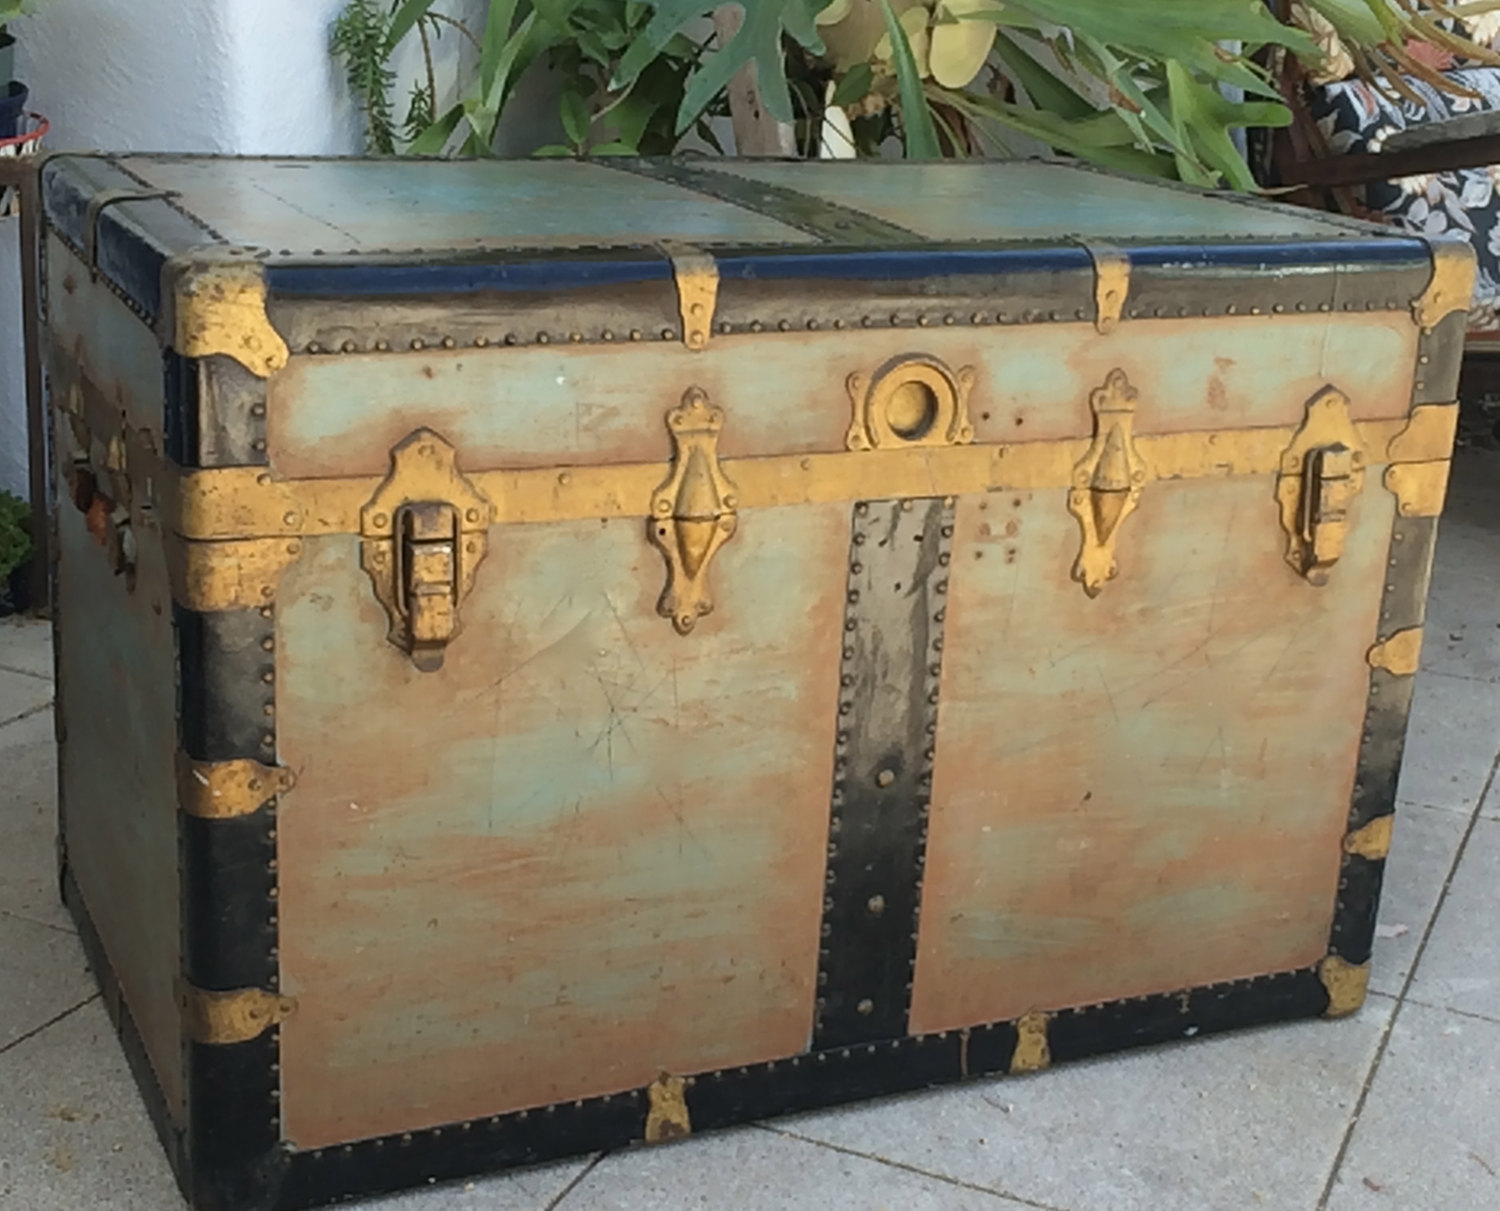 Exceptionnel Vintage XL Steamer Trunk Coffee Table SteamPunk Storage Trunk Trunk Coffee  Table Flat Top Trunk Vintage